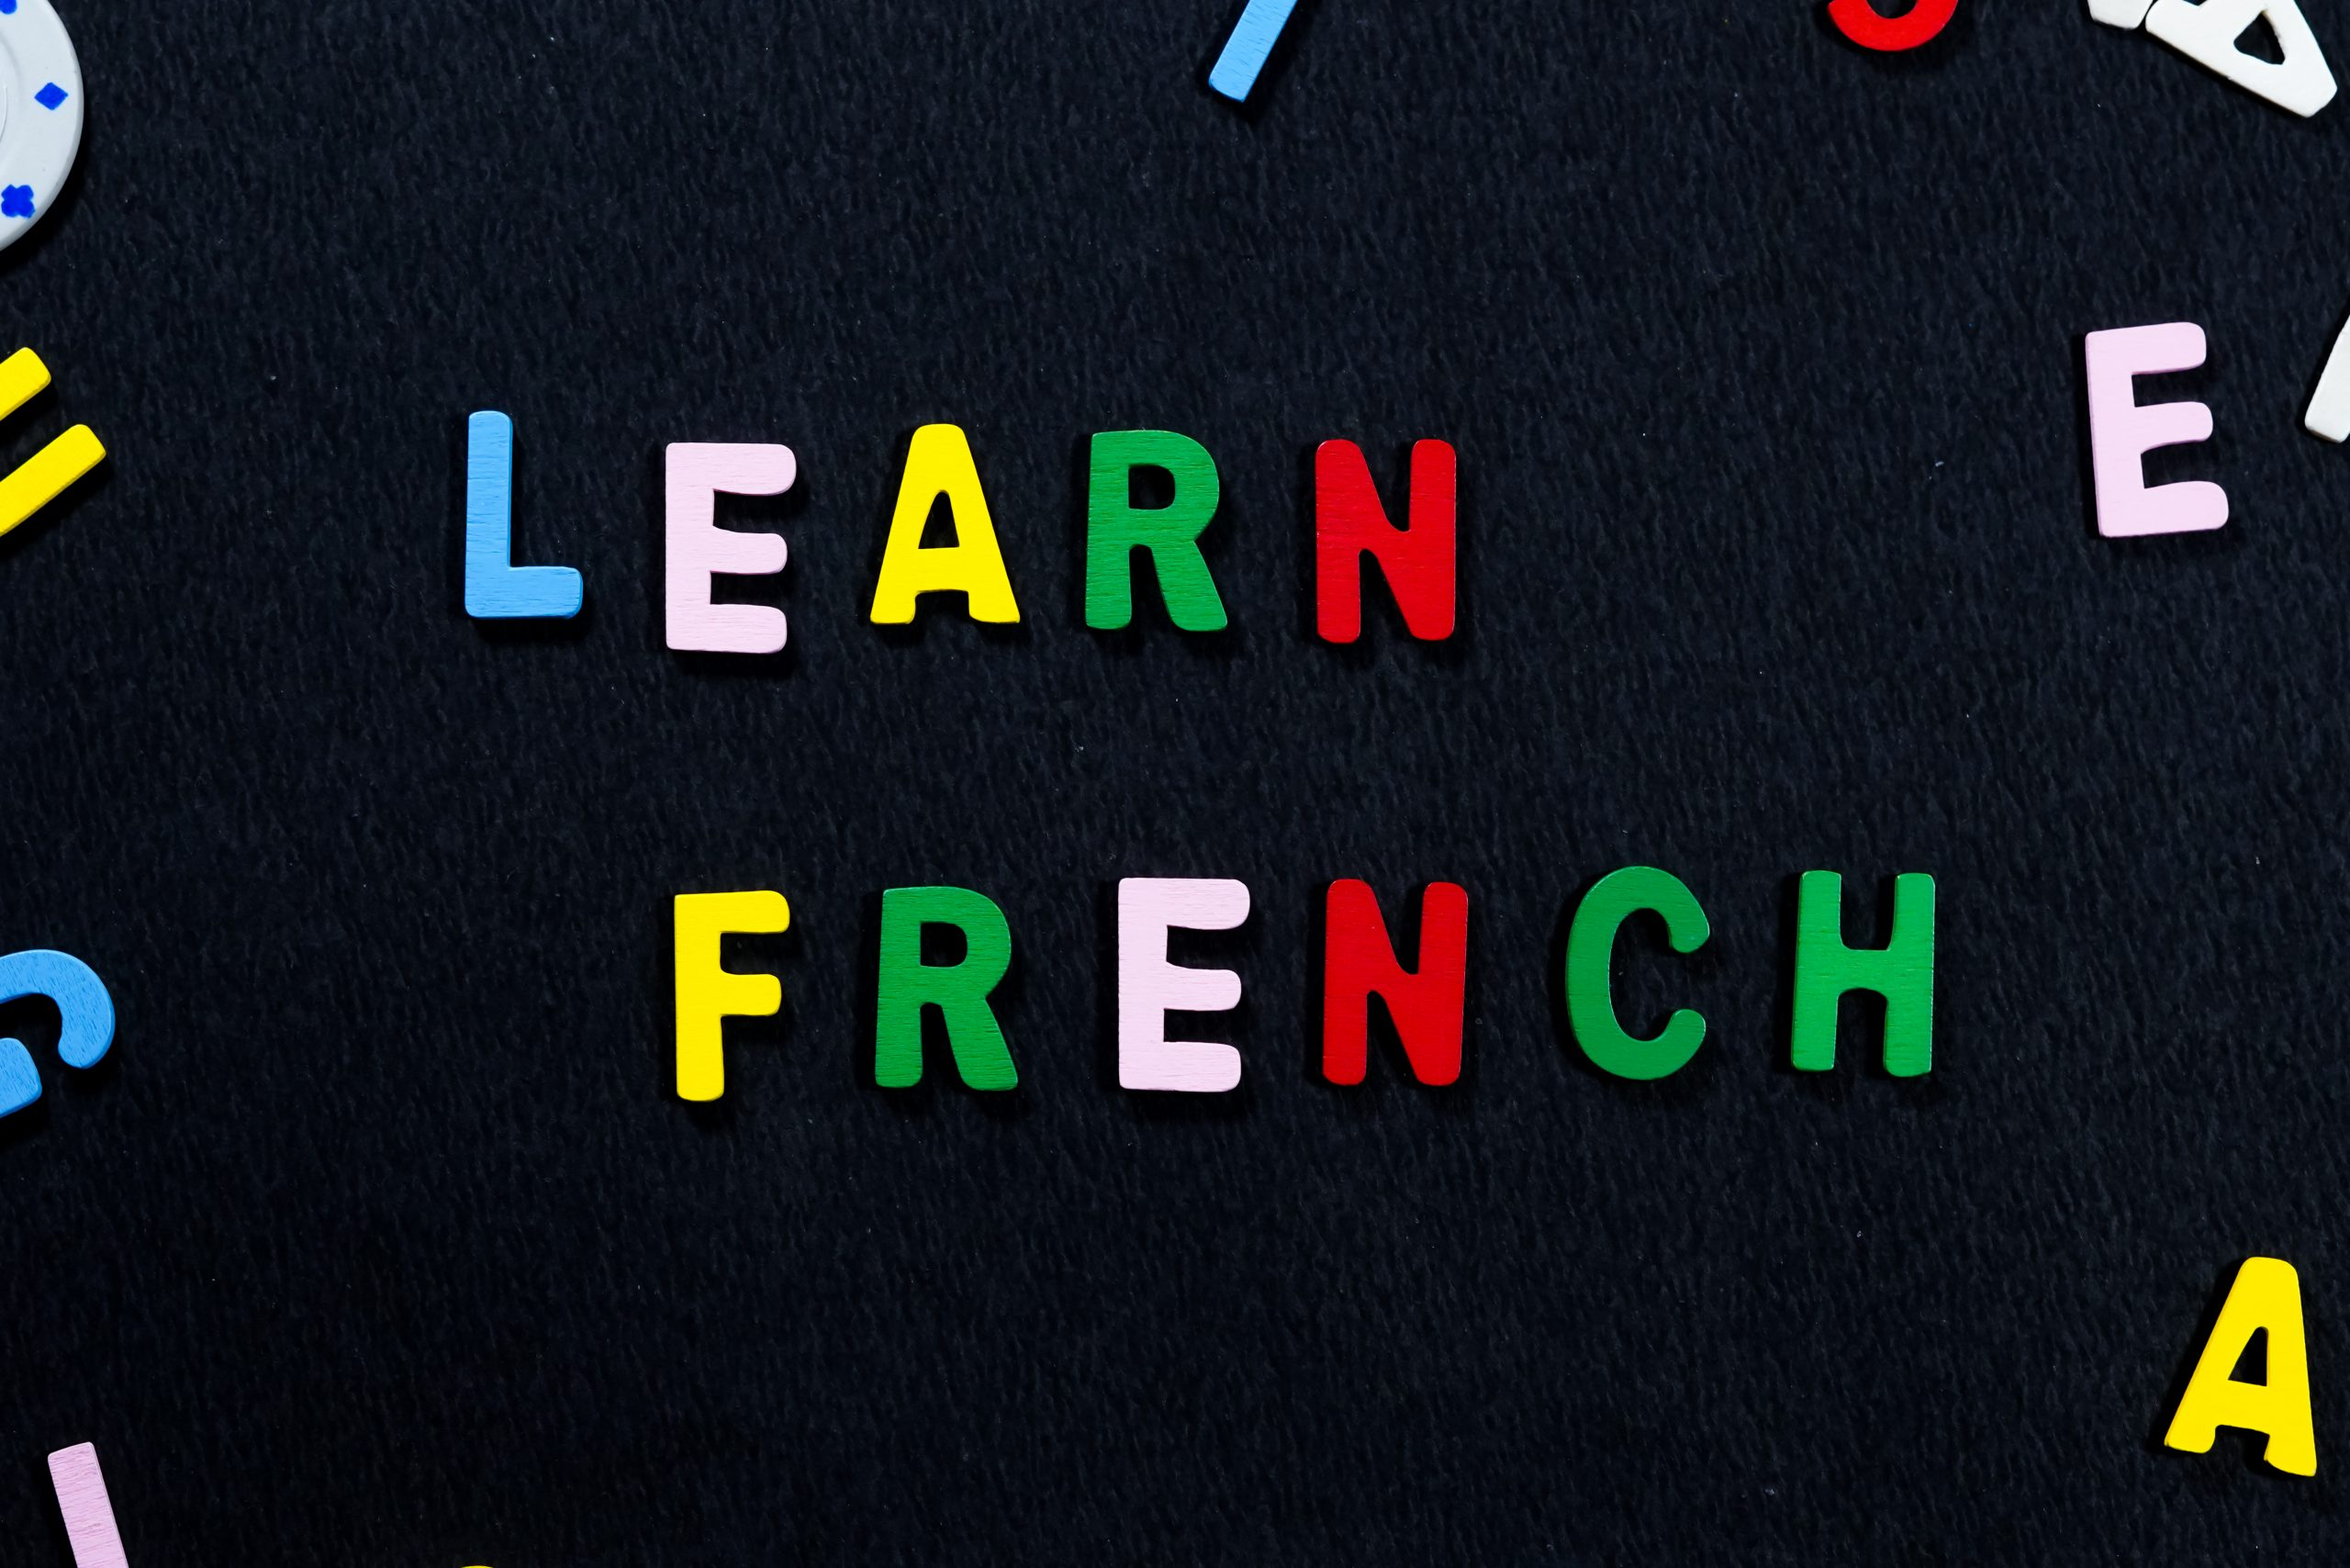 An advertisement for learning French